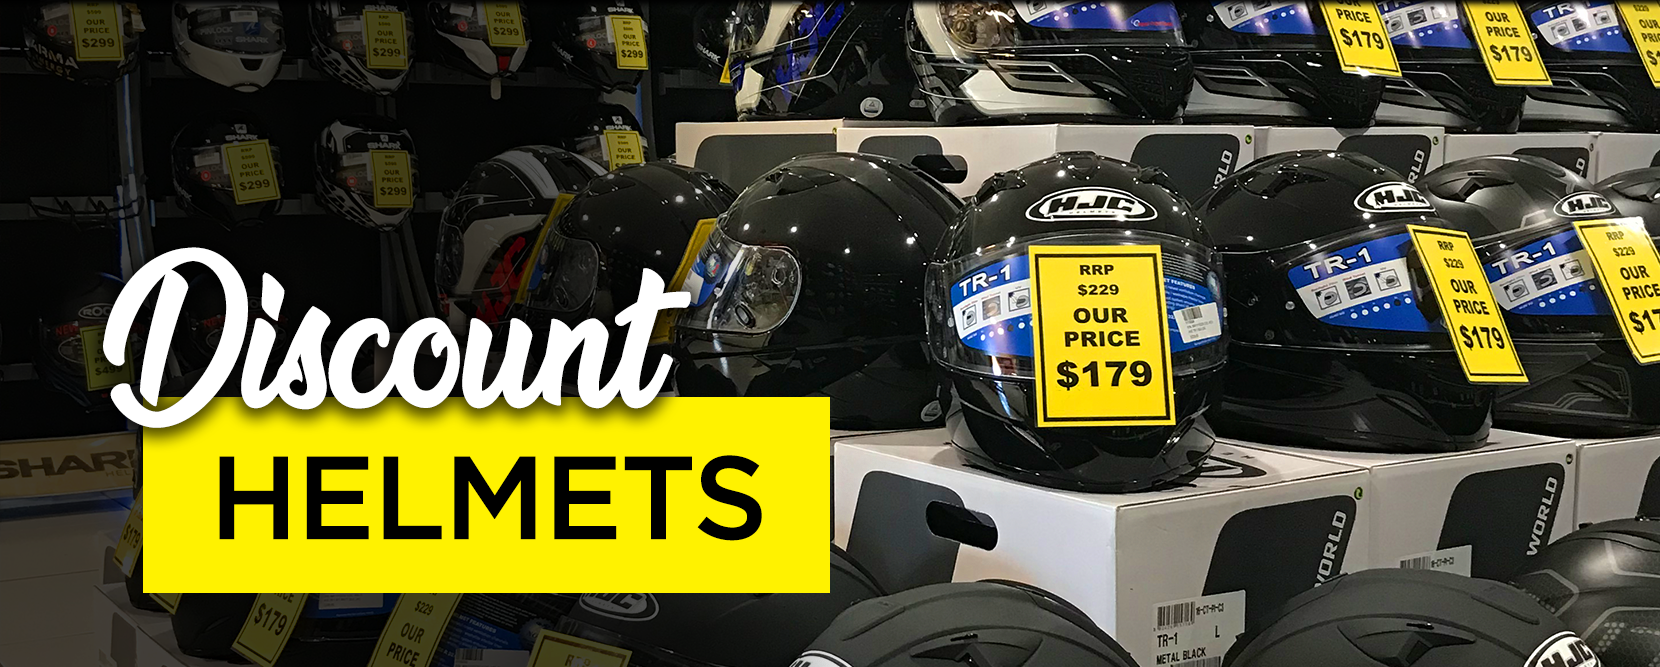 Discount Motorcycle Gear >> Home Discount Motorcycle Gear